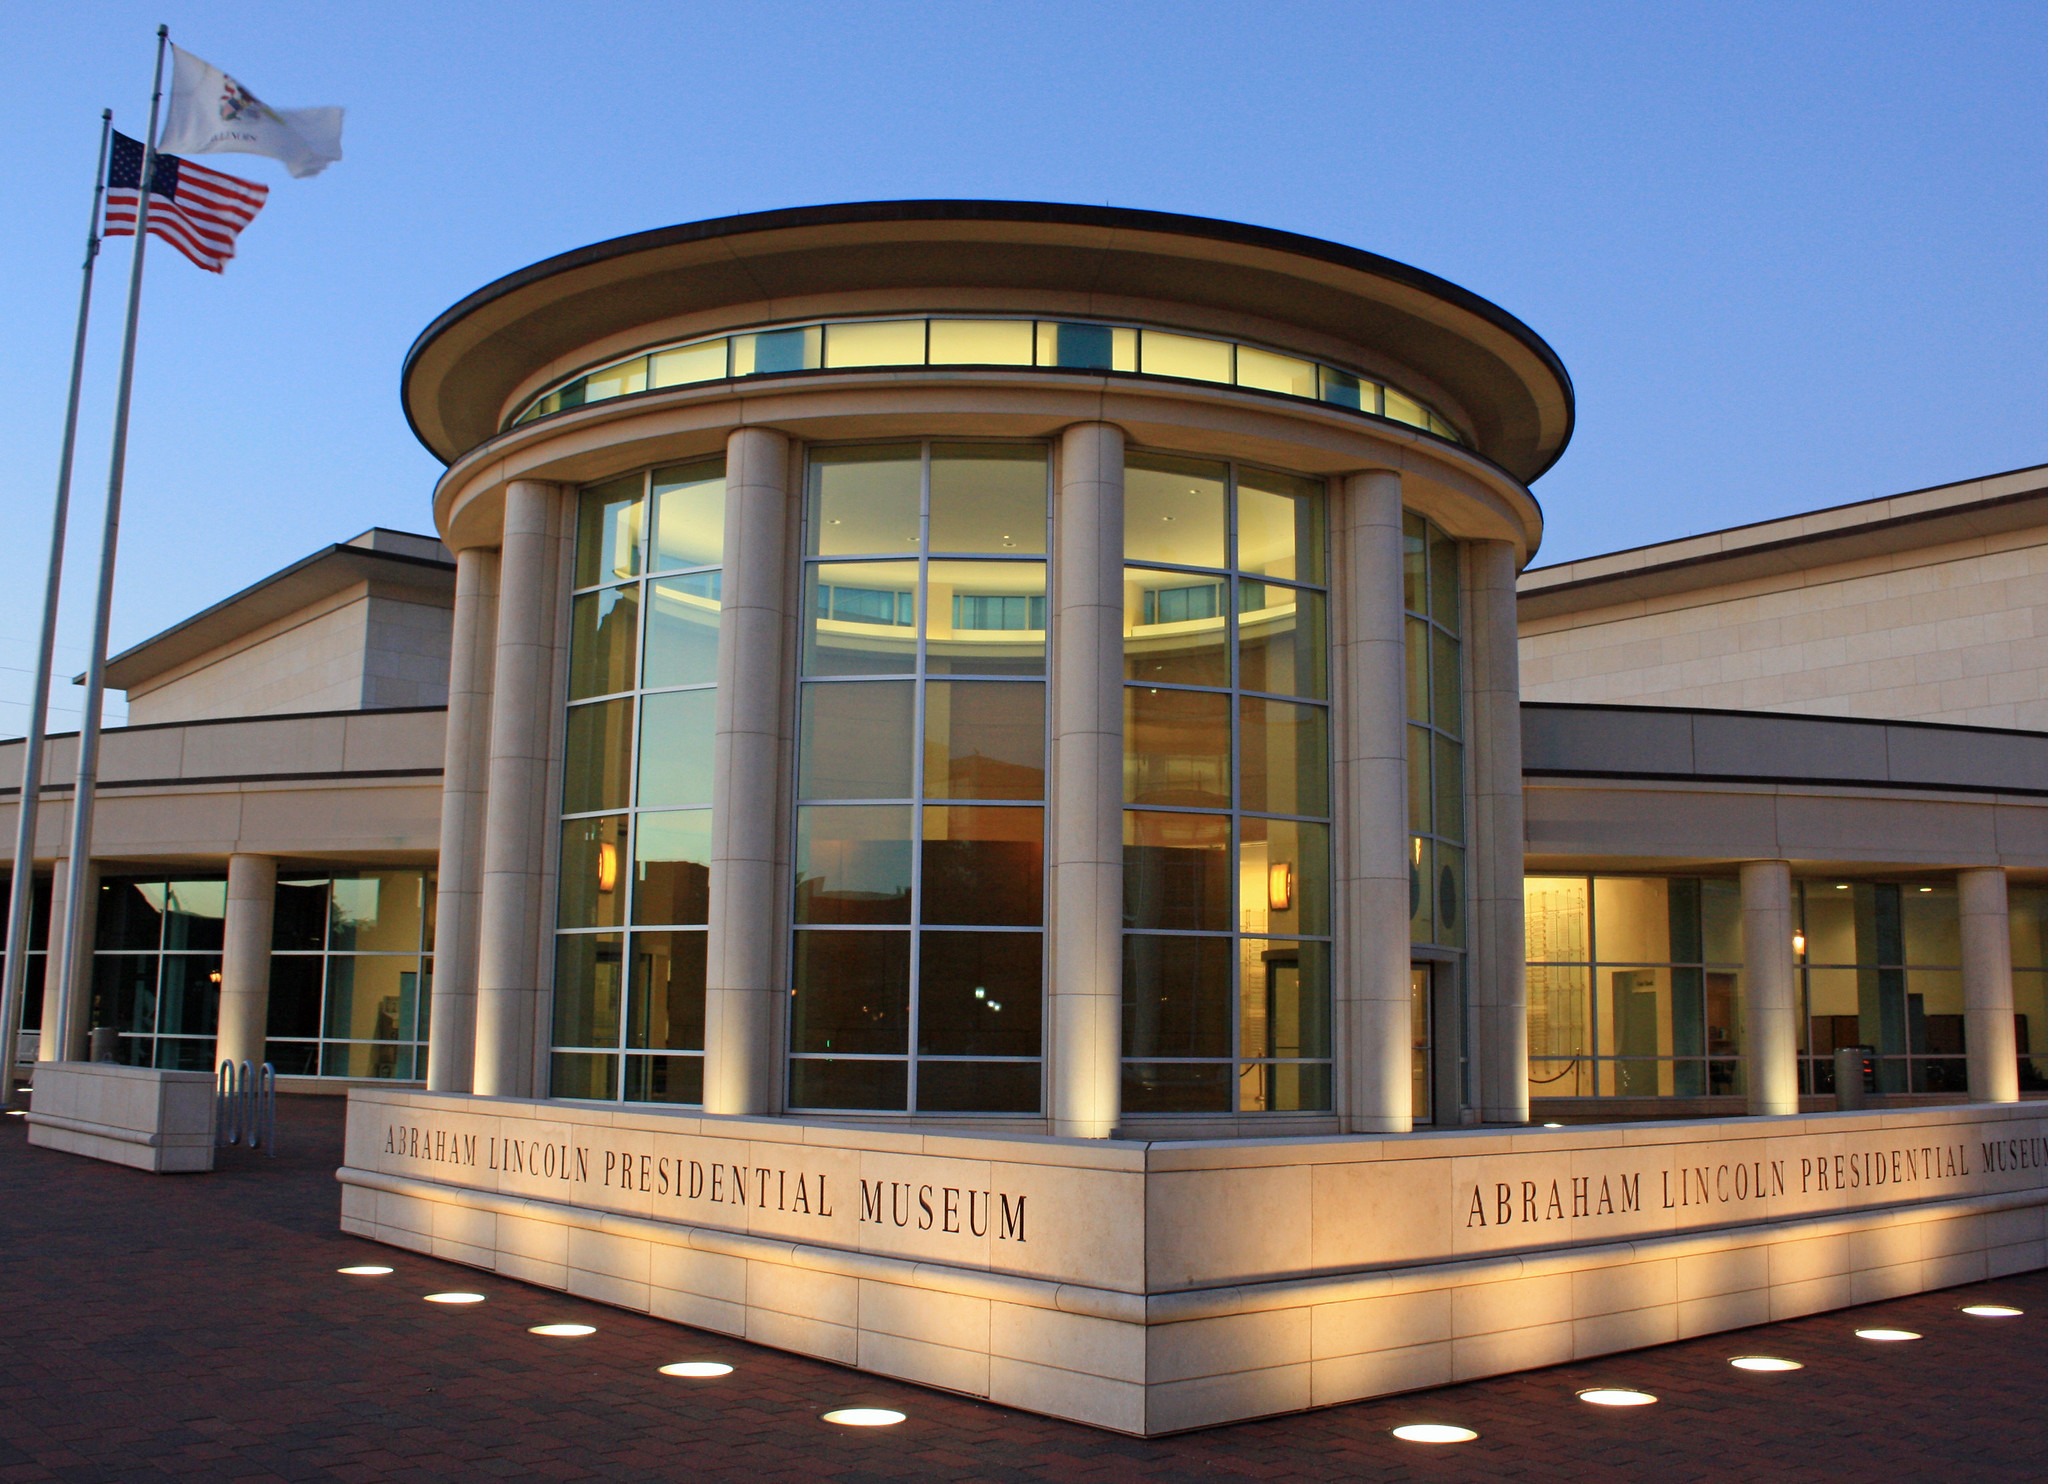 Free Admission Offered to Lincoln Presidential Library for Those with COVID-19 Vaccine